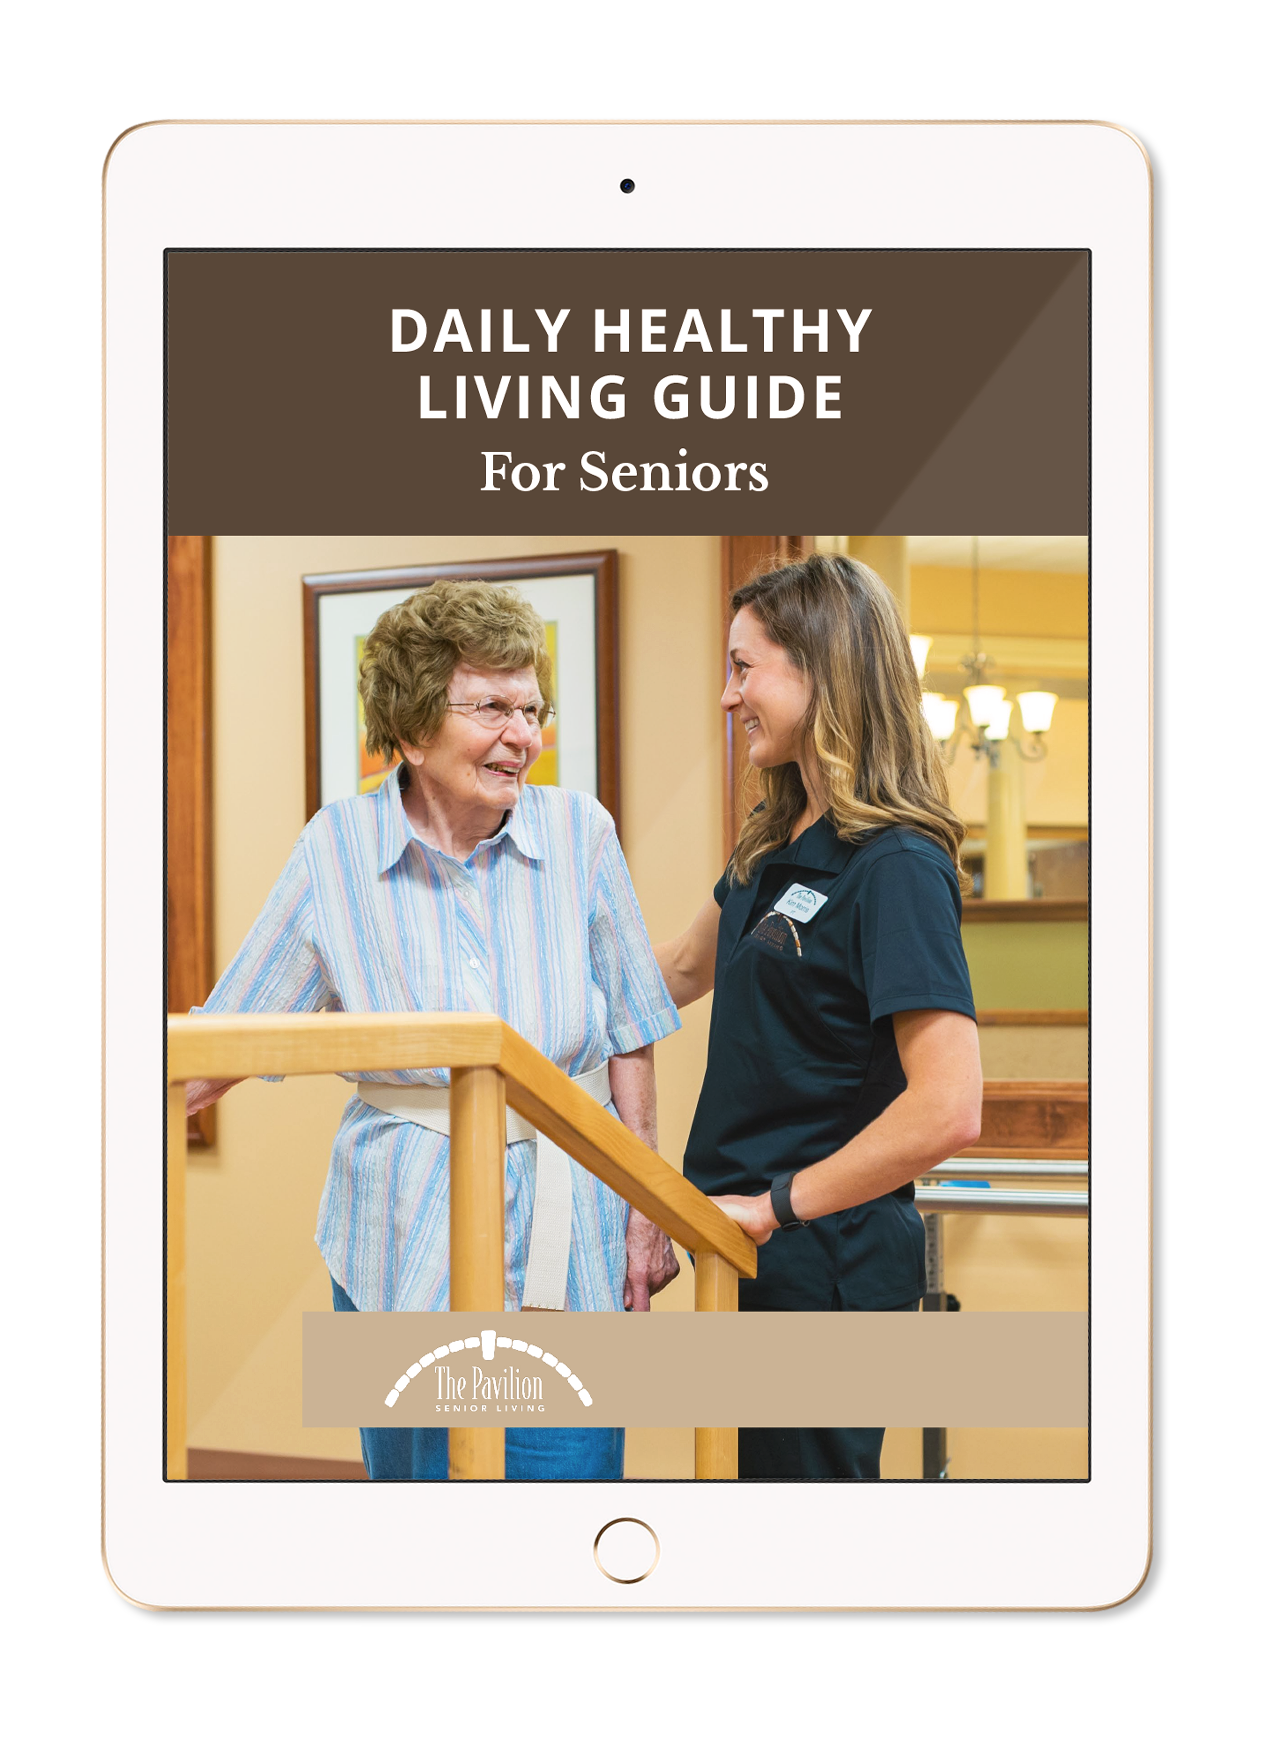 Daily Healthy Living Guide eBook_The Pavilion Senior Living